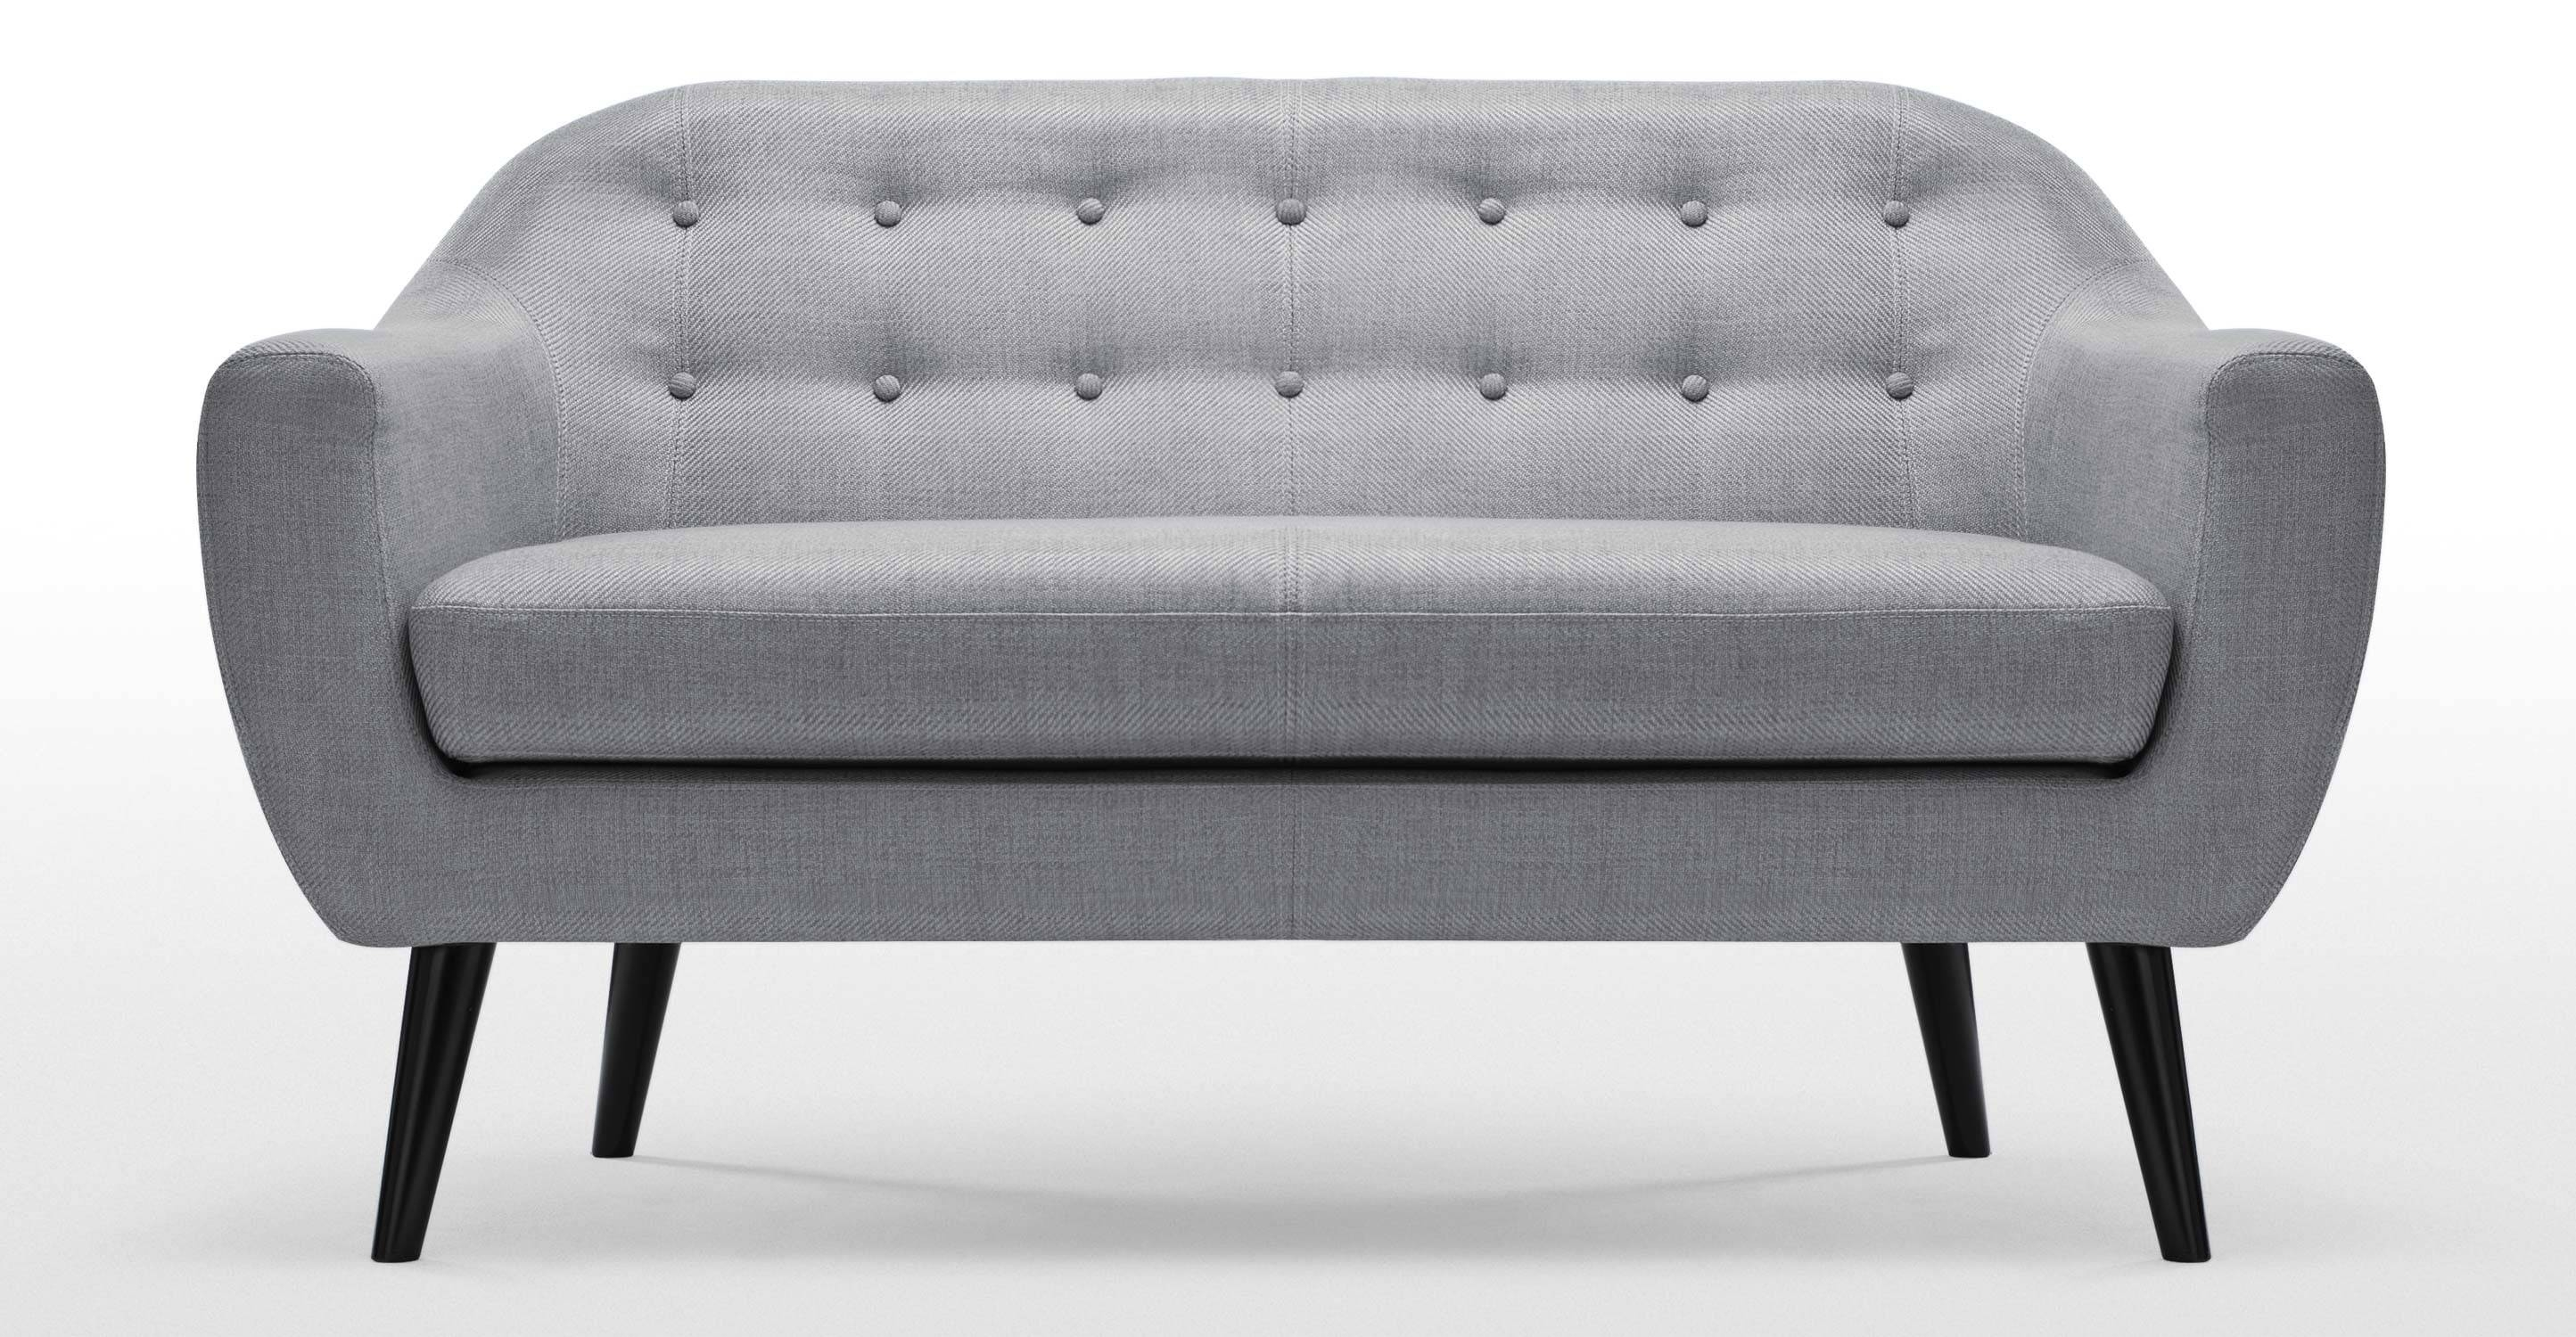 Ritchie 2 Seater Sofa In Pearl Grey | Made pertaining to Grey Sofa Chairs (Image 23 of 30)